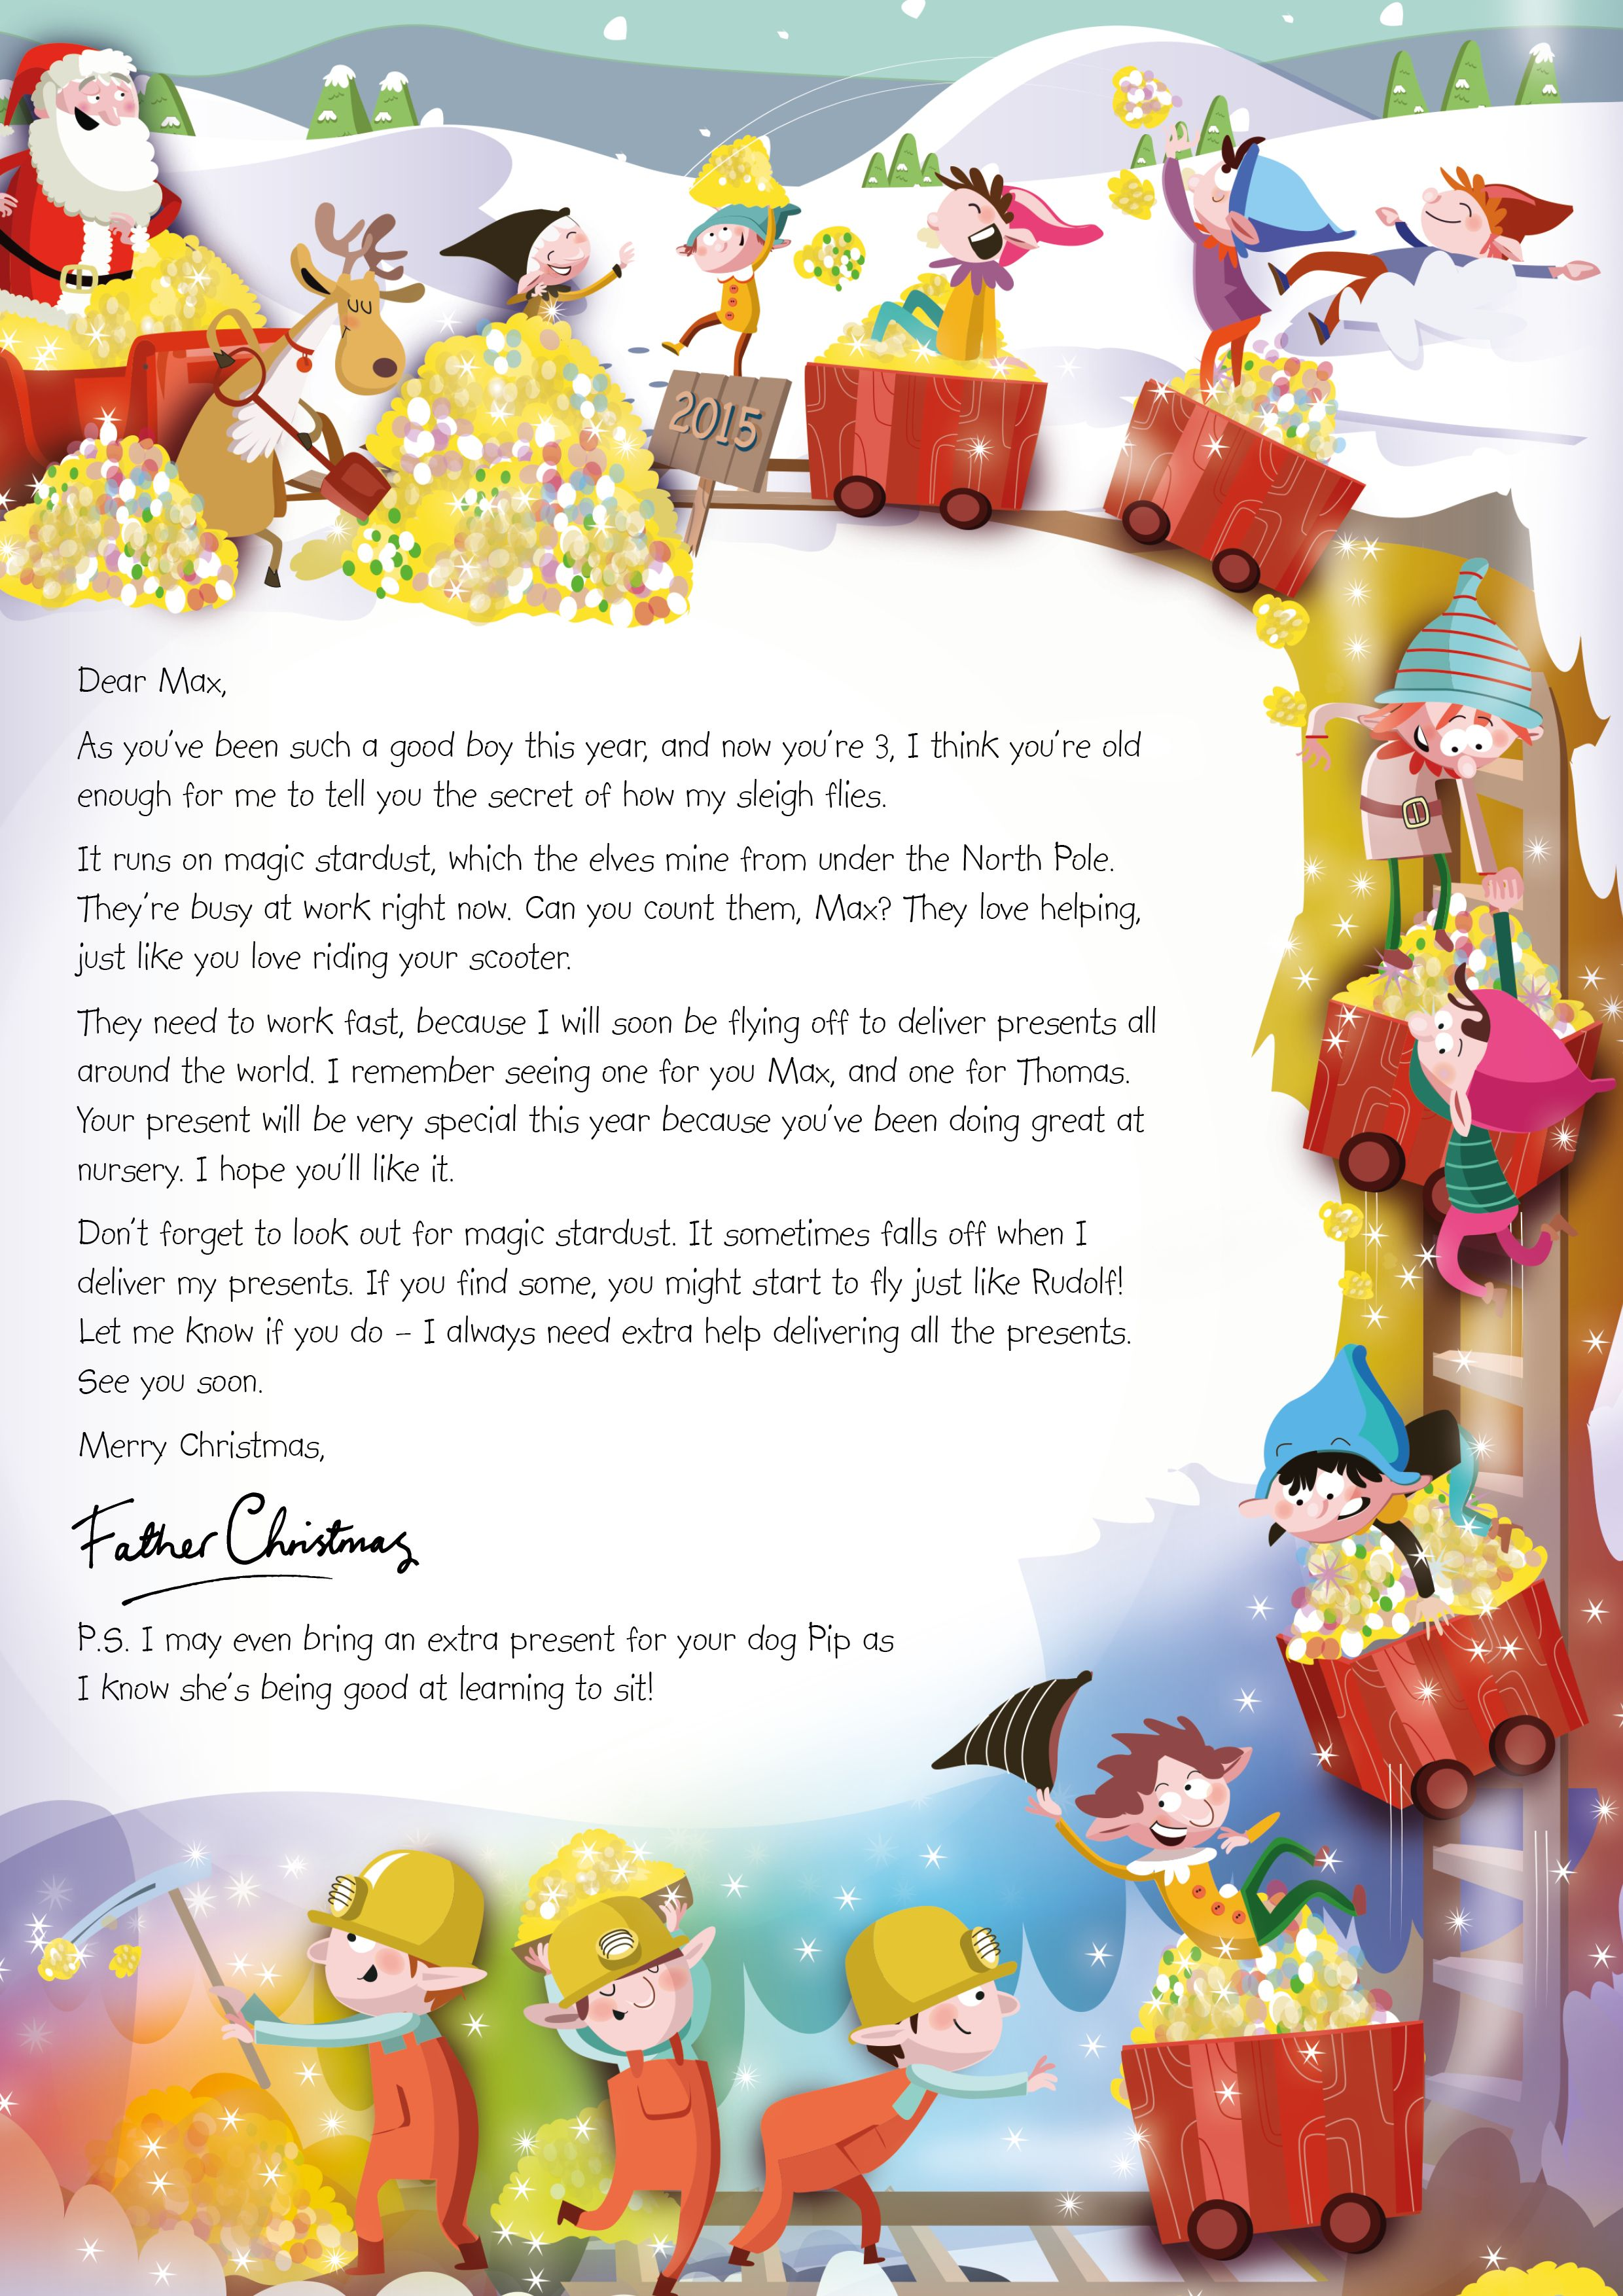 Nspcc letter from santa magic christmas stardust 2015 https nspcc letter from santa magic christmas stardust 2015 httpswww spiritdancerdesigns Choice Image